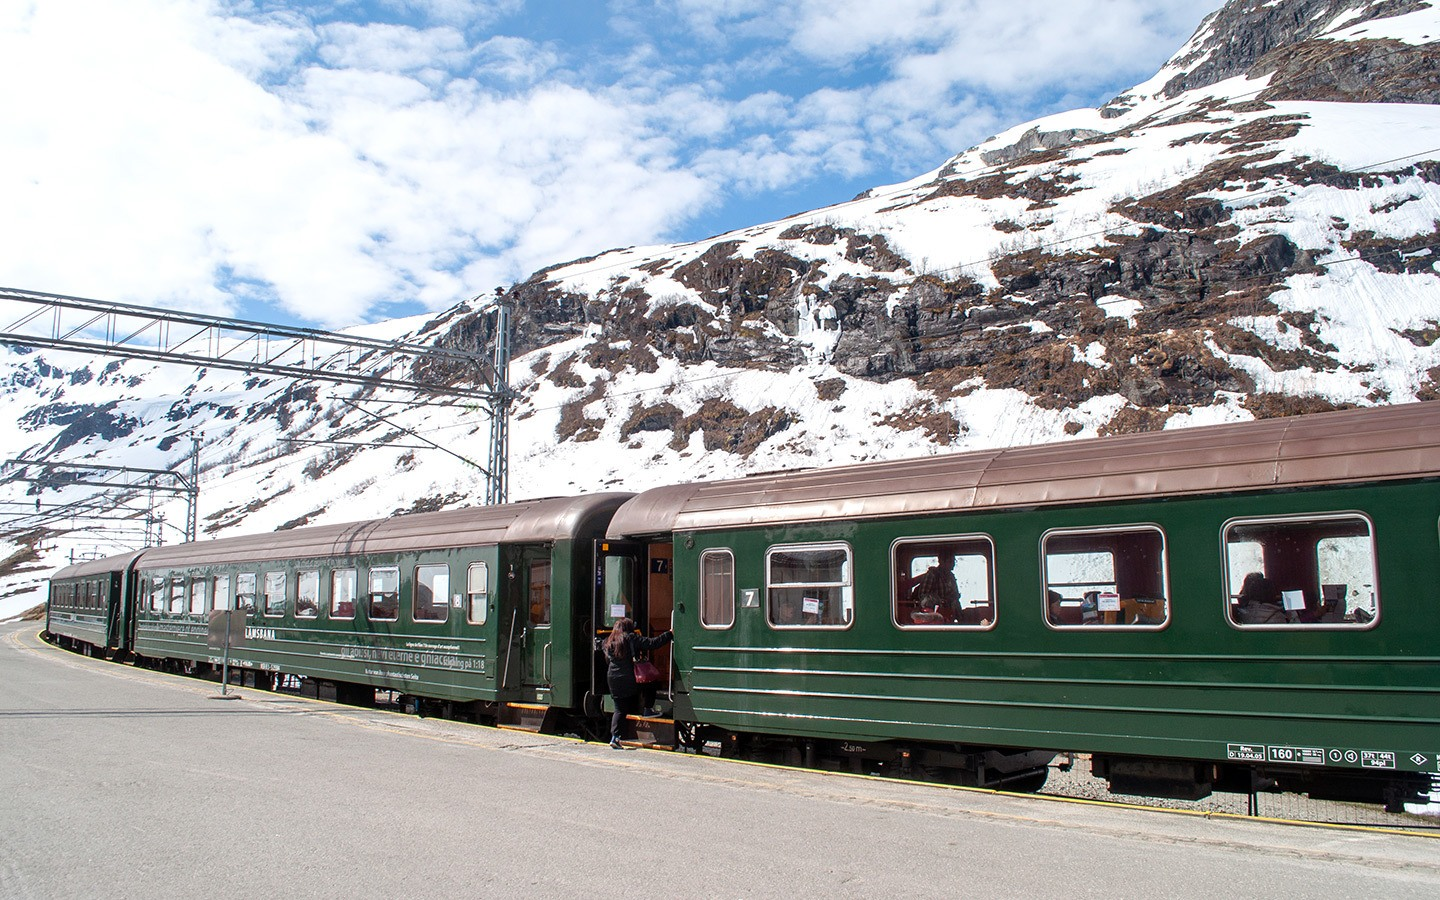 A European rail trip on the Flamsbana scenic train in Norway